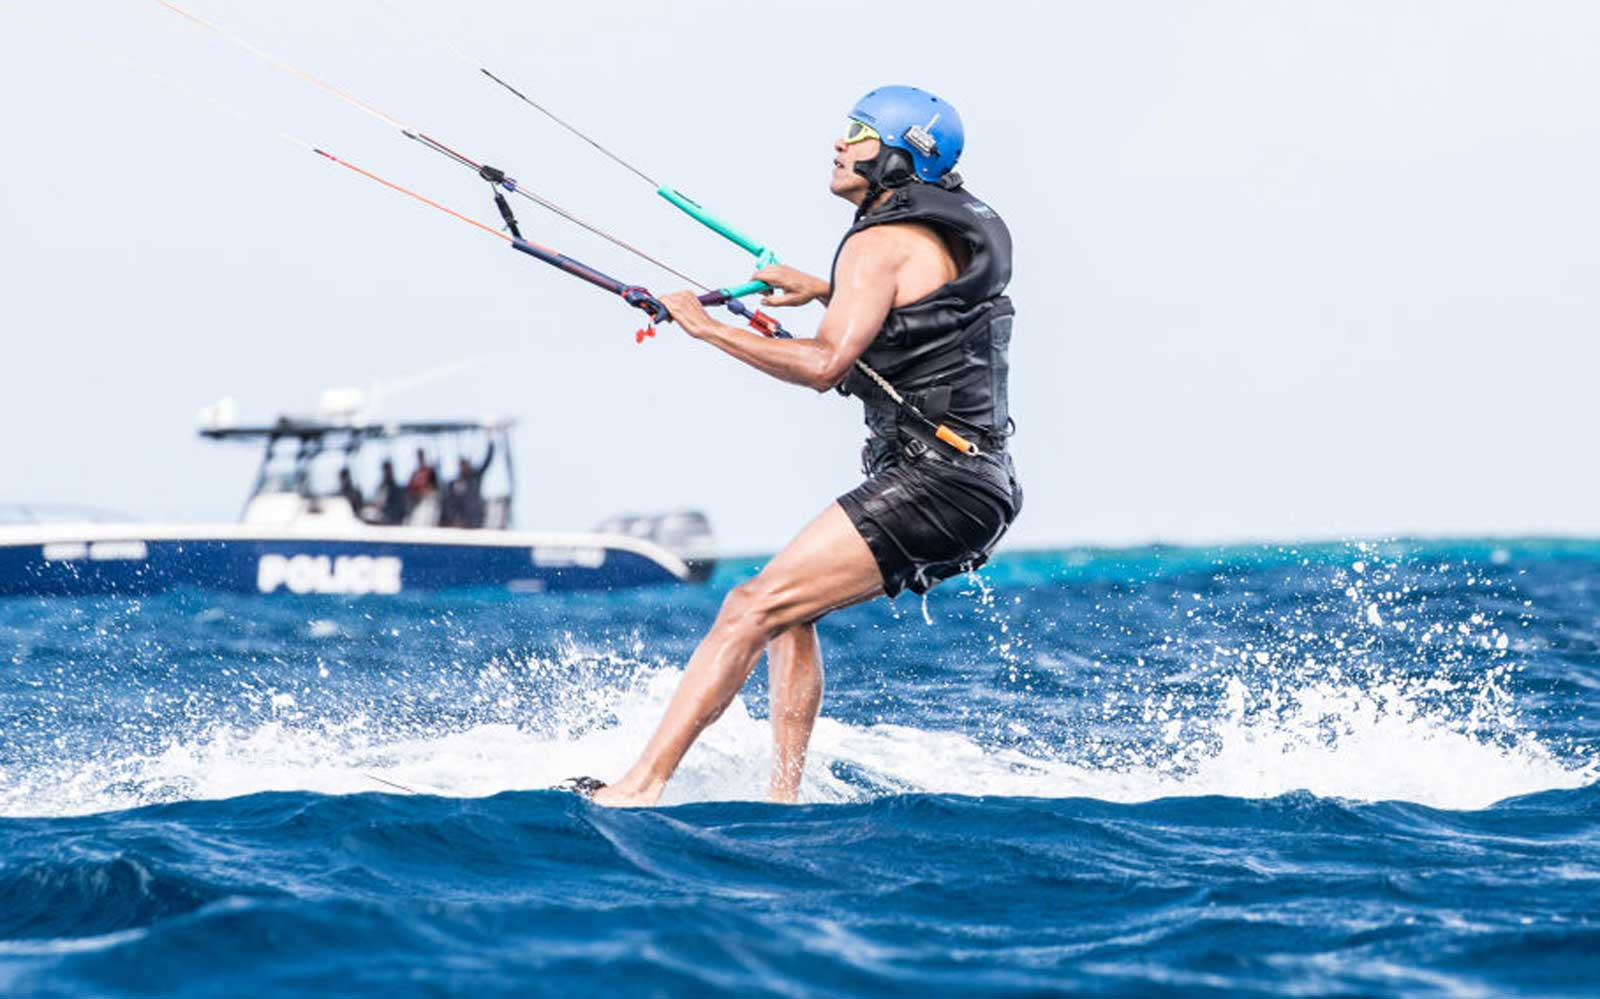 Former President Barack Obama Goes Kitesurfing In The Caribbean